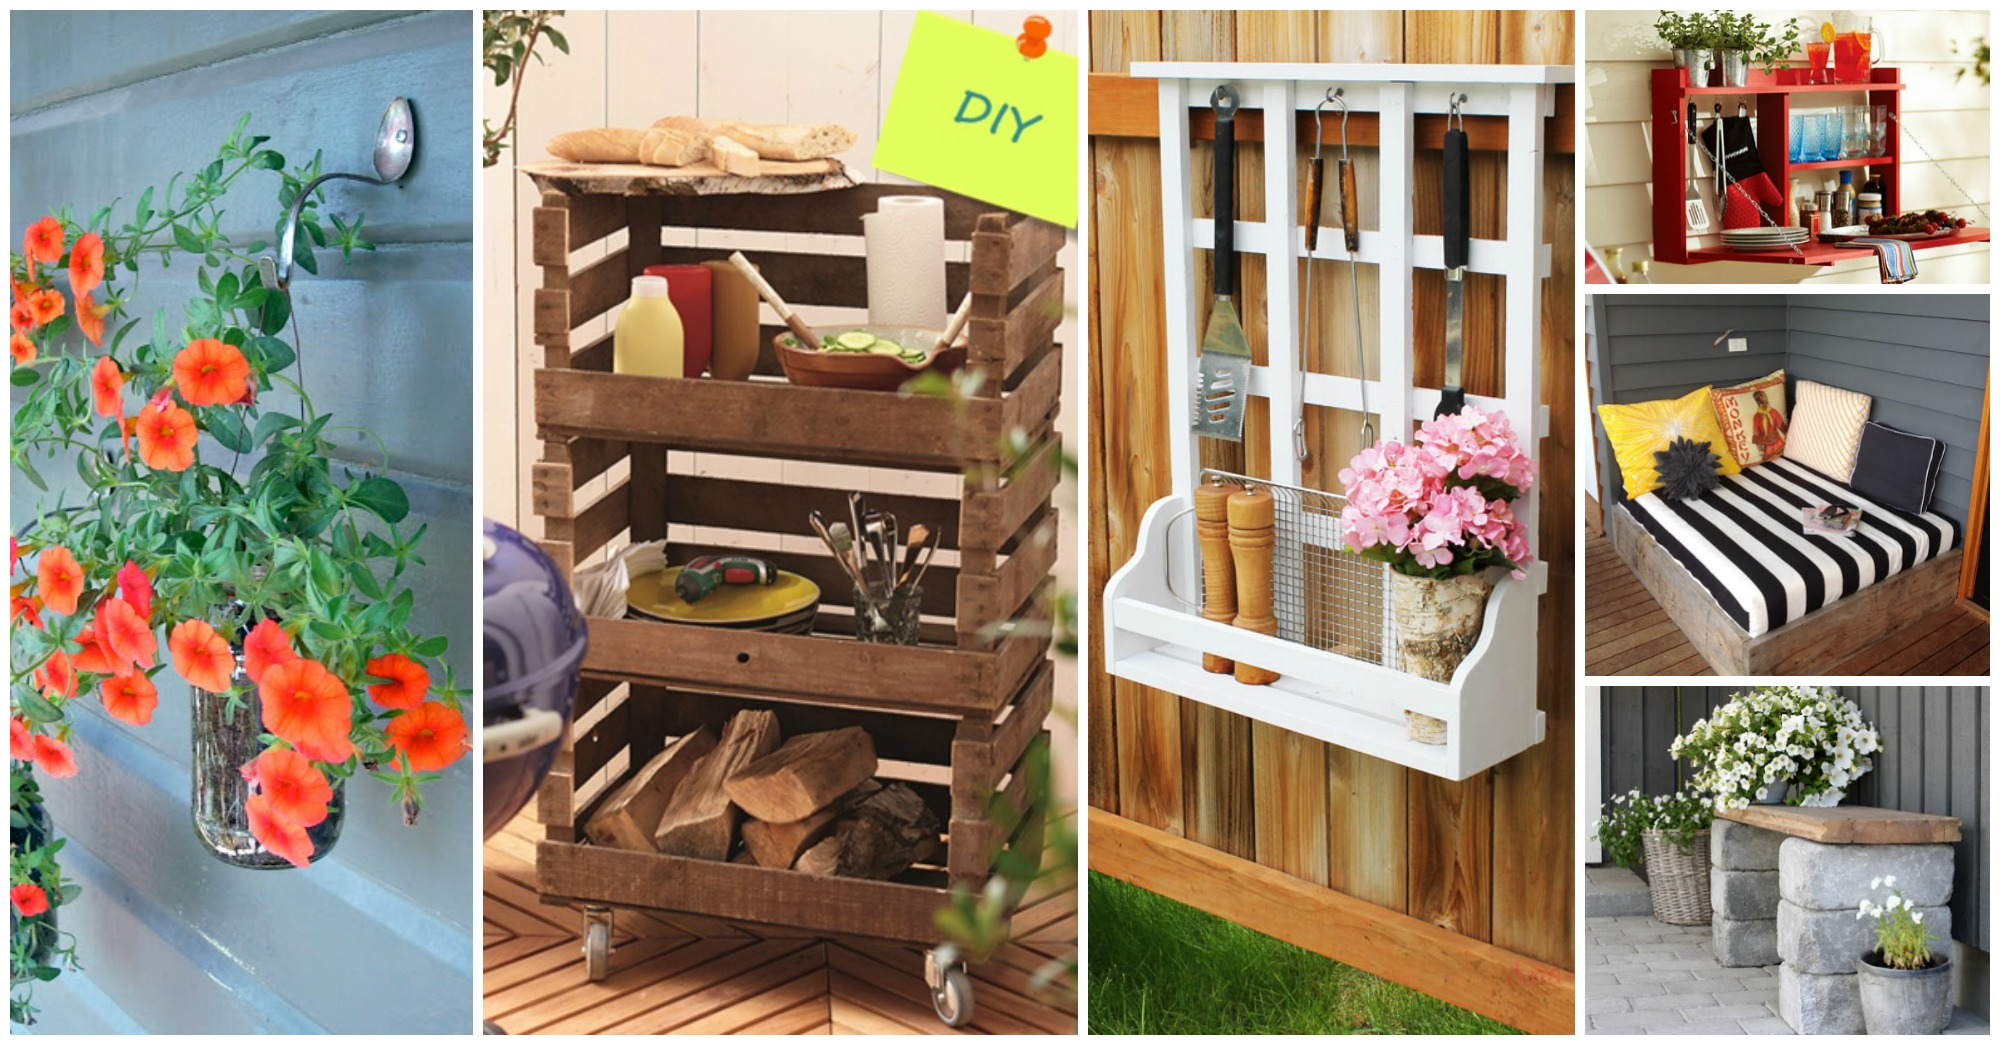 15 proyectos diy para decorar el jard n con objetos for Casa y jardin decoracion